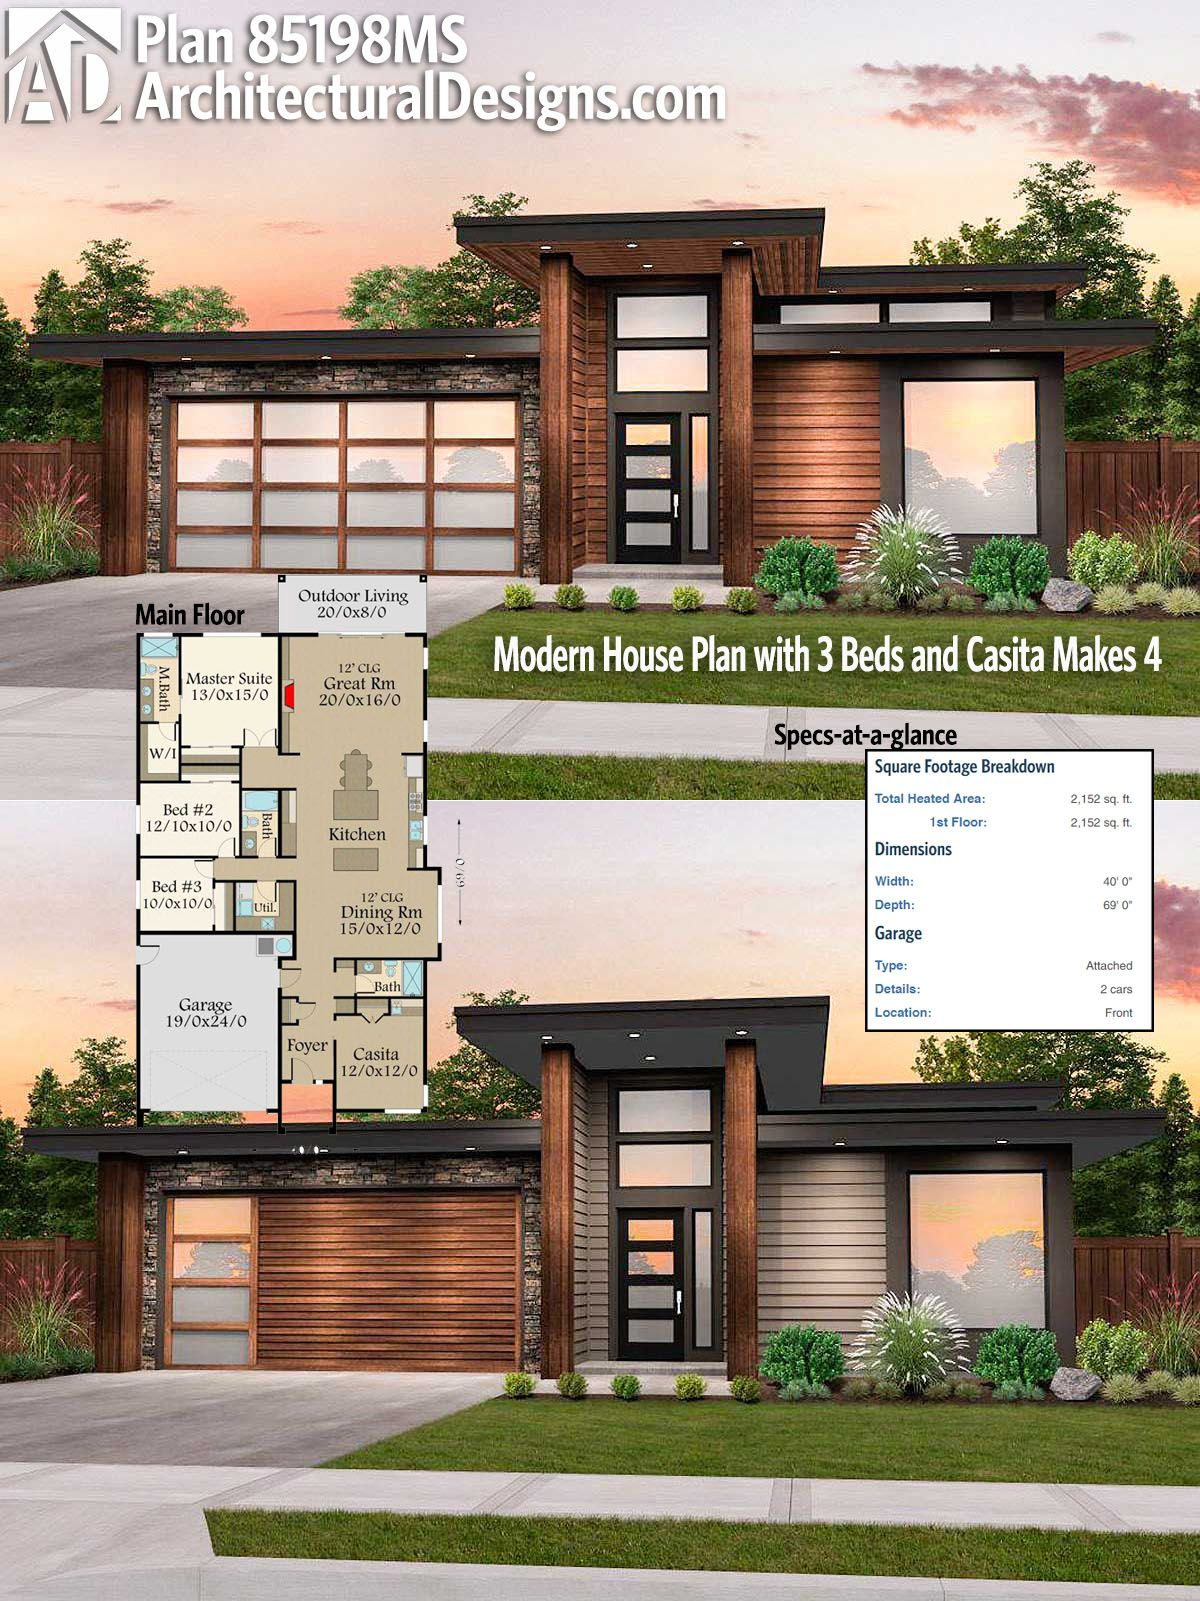 architectural designs modern house plan 85198ms 4bd3ba 2100 square feet needs a - House Plans With Attached Casita